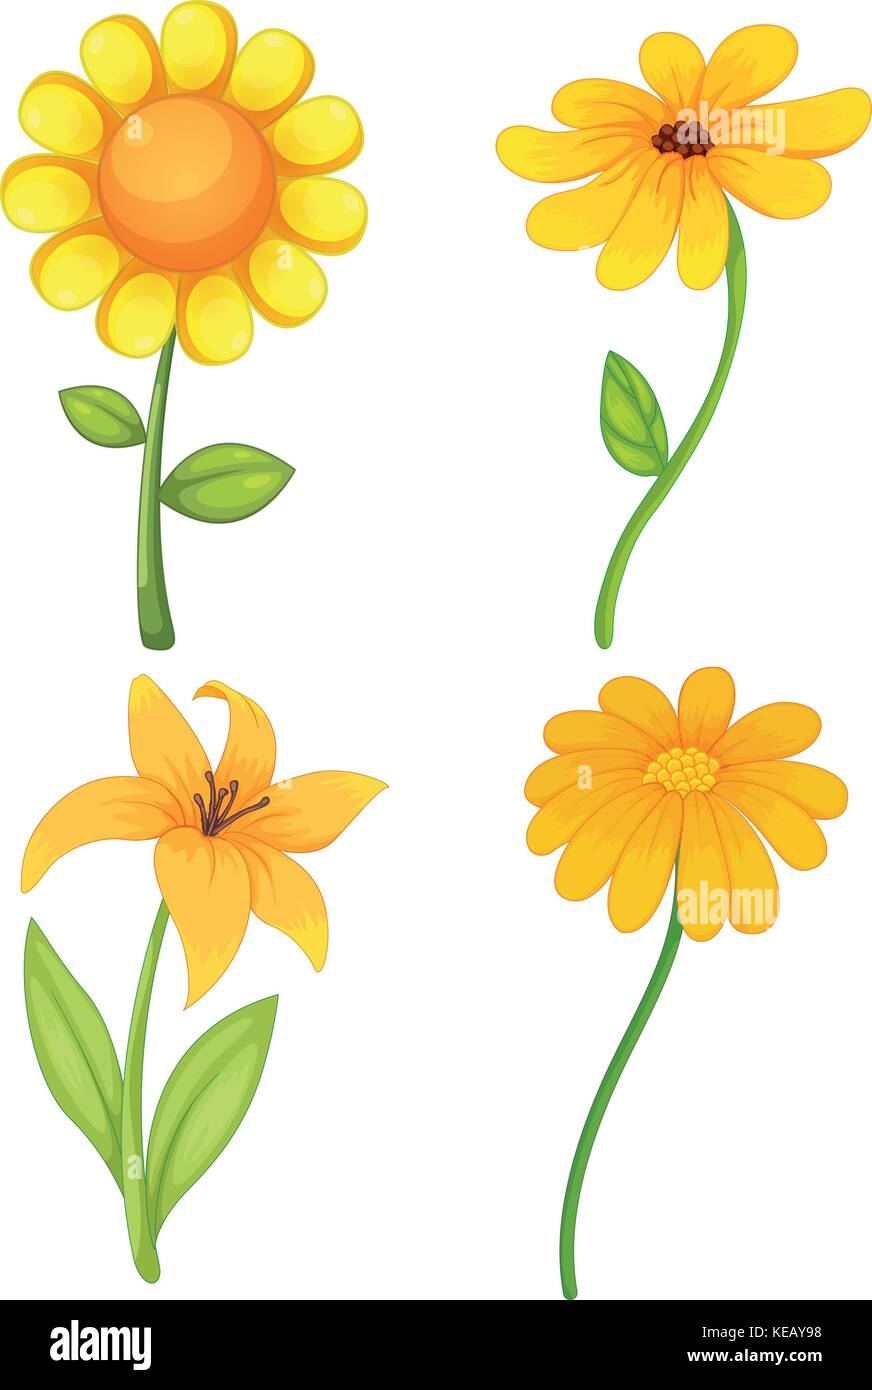 Four different kinds of yellow flowers stock vector art four different kinds of yellow flowers mightylinksfo